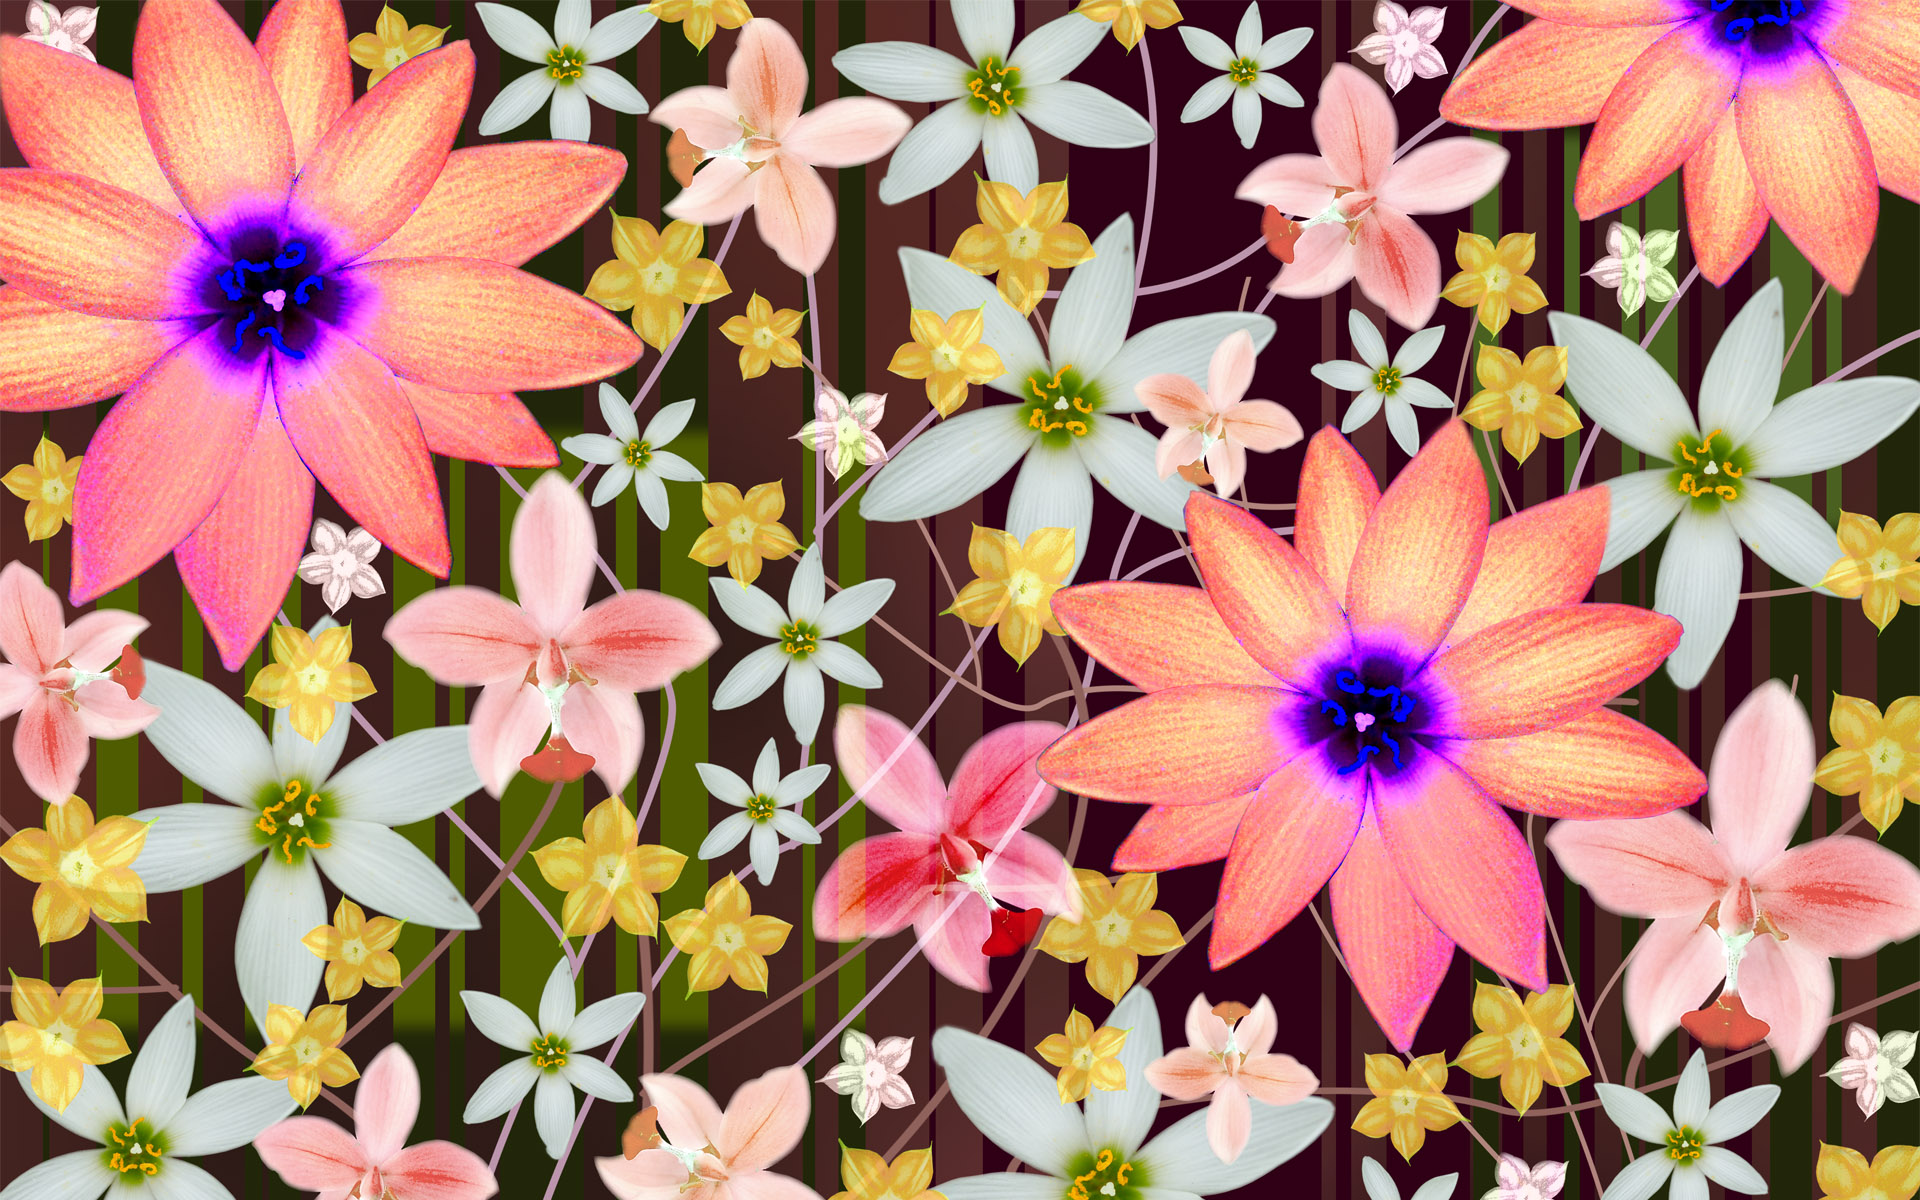 Free Colorful Flower Wallpaper Downloads: A Full Screen Of Colorful Flowers, All Dancing And Singing